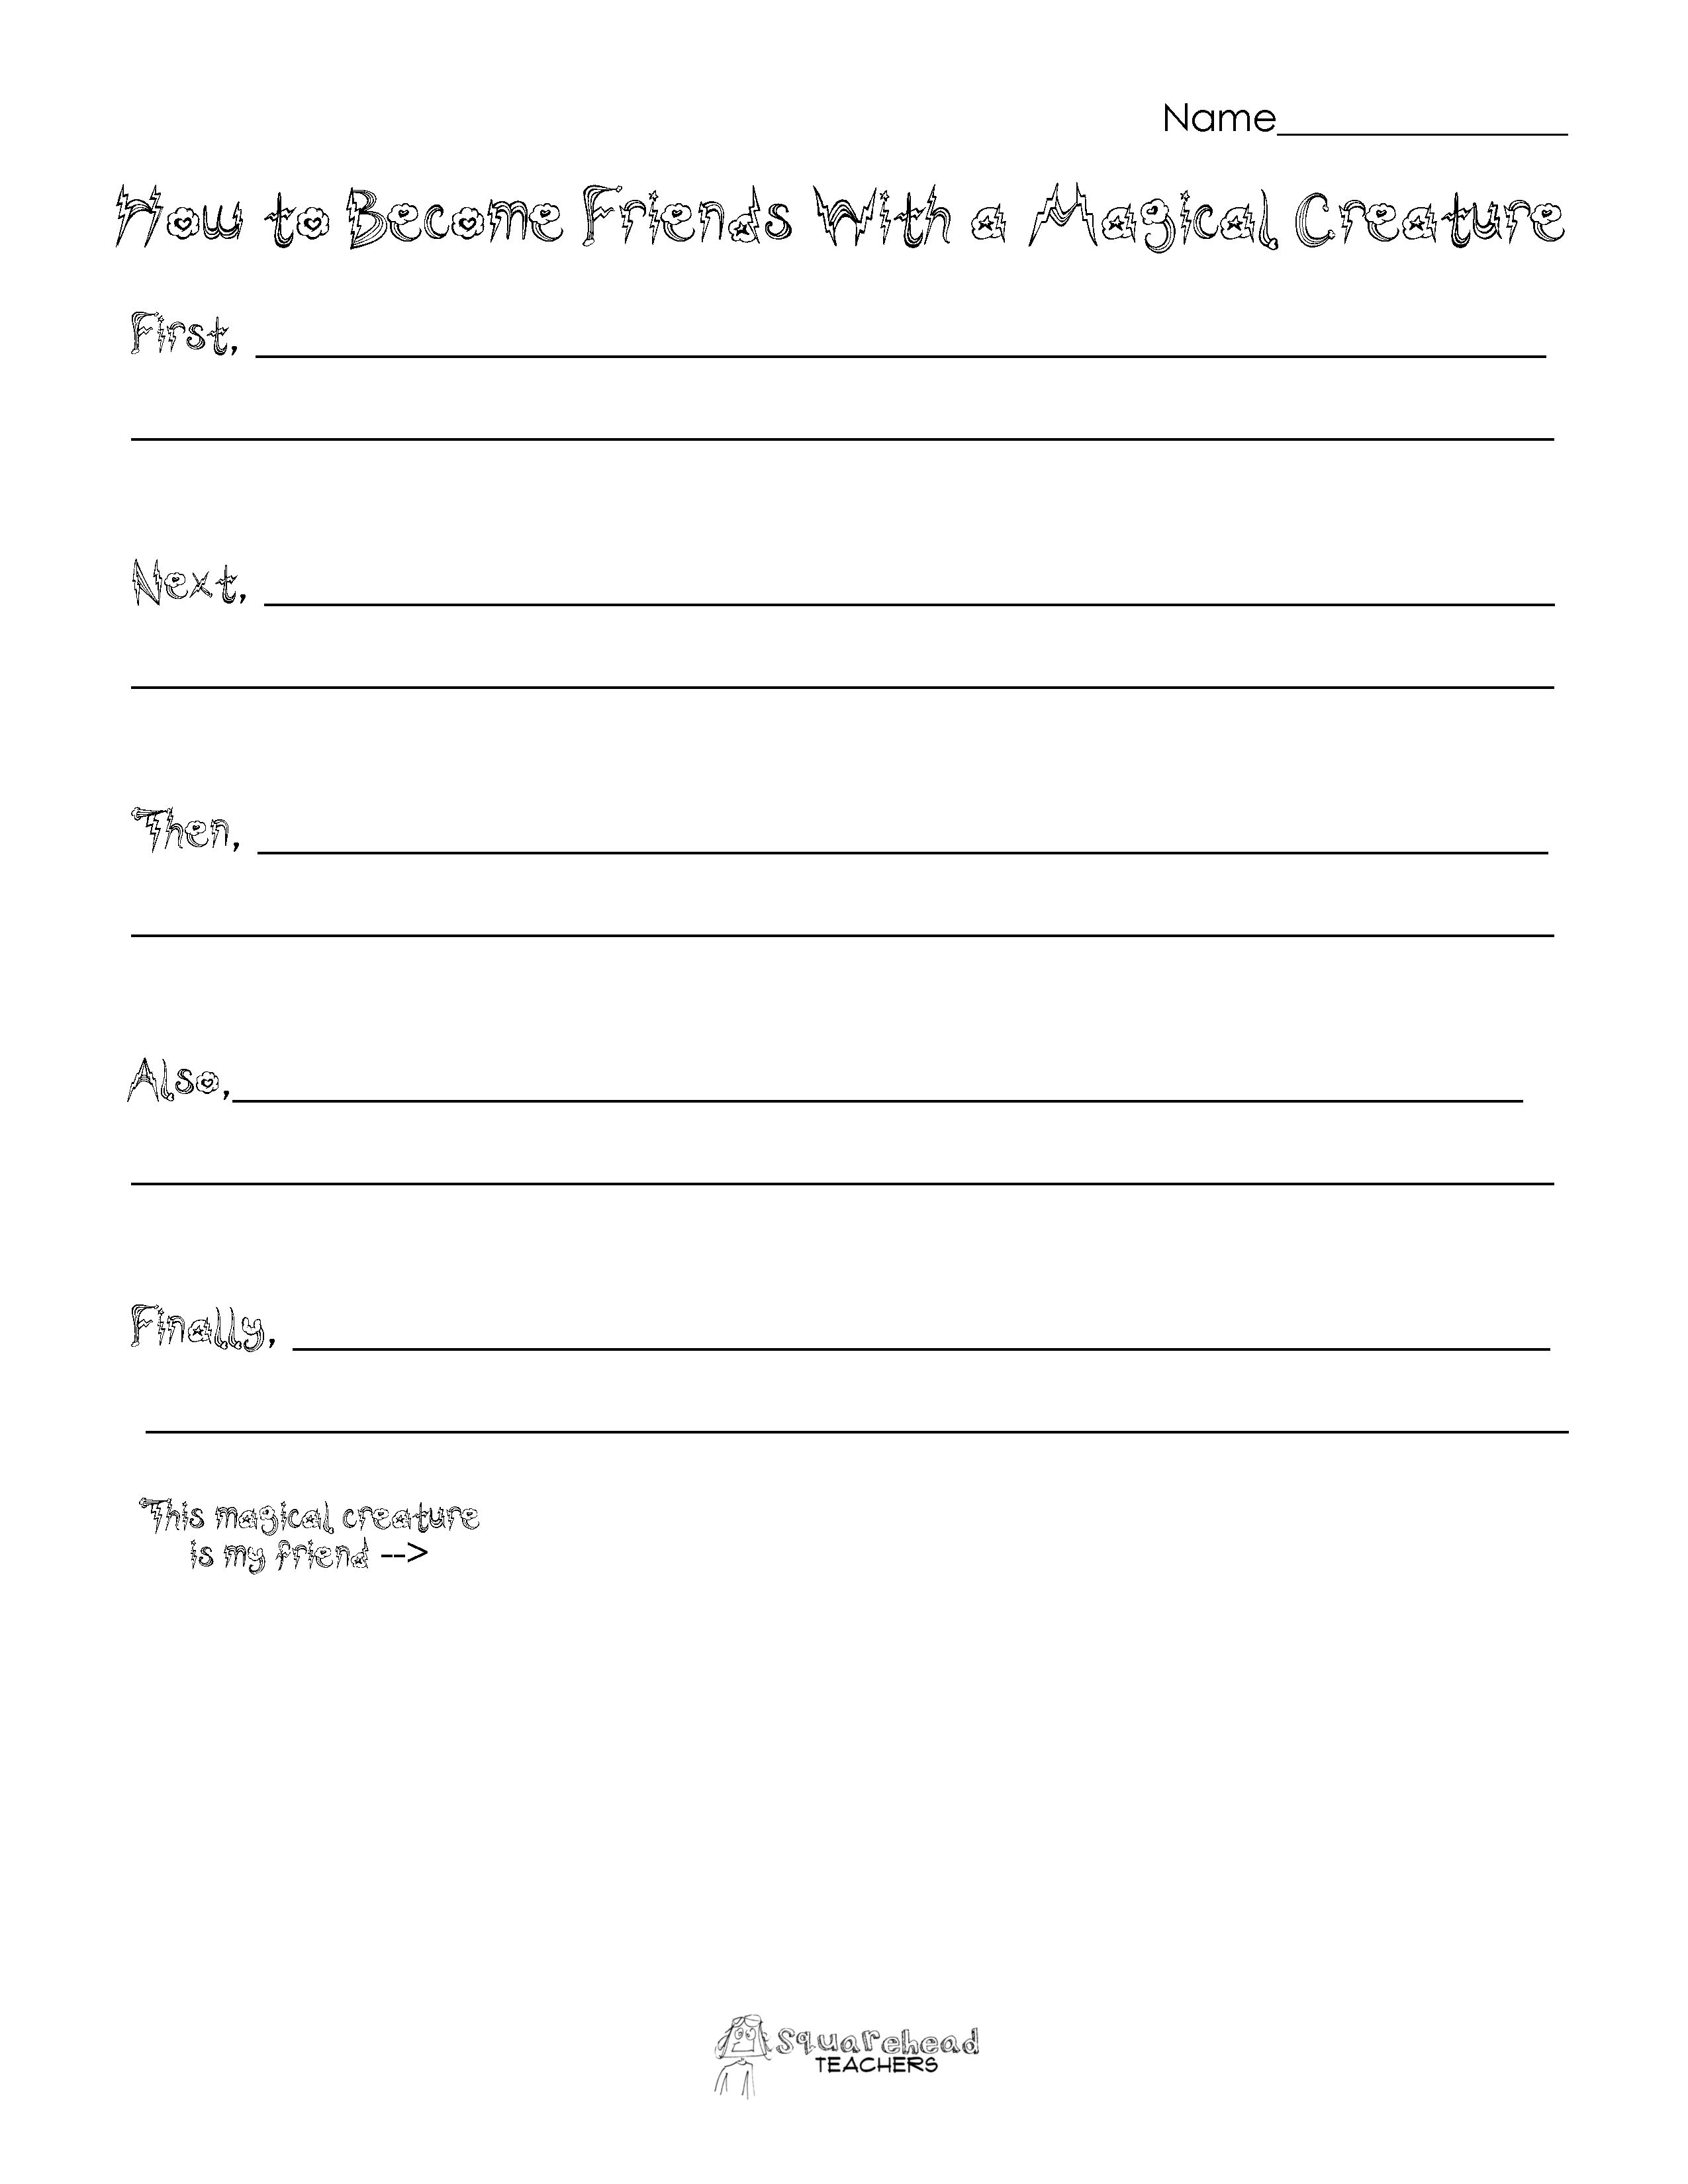 Masque Of The Red Worksheet Answer Key